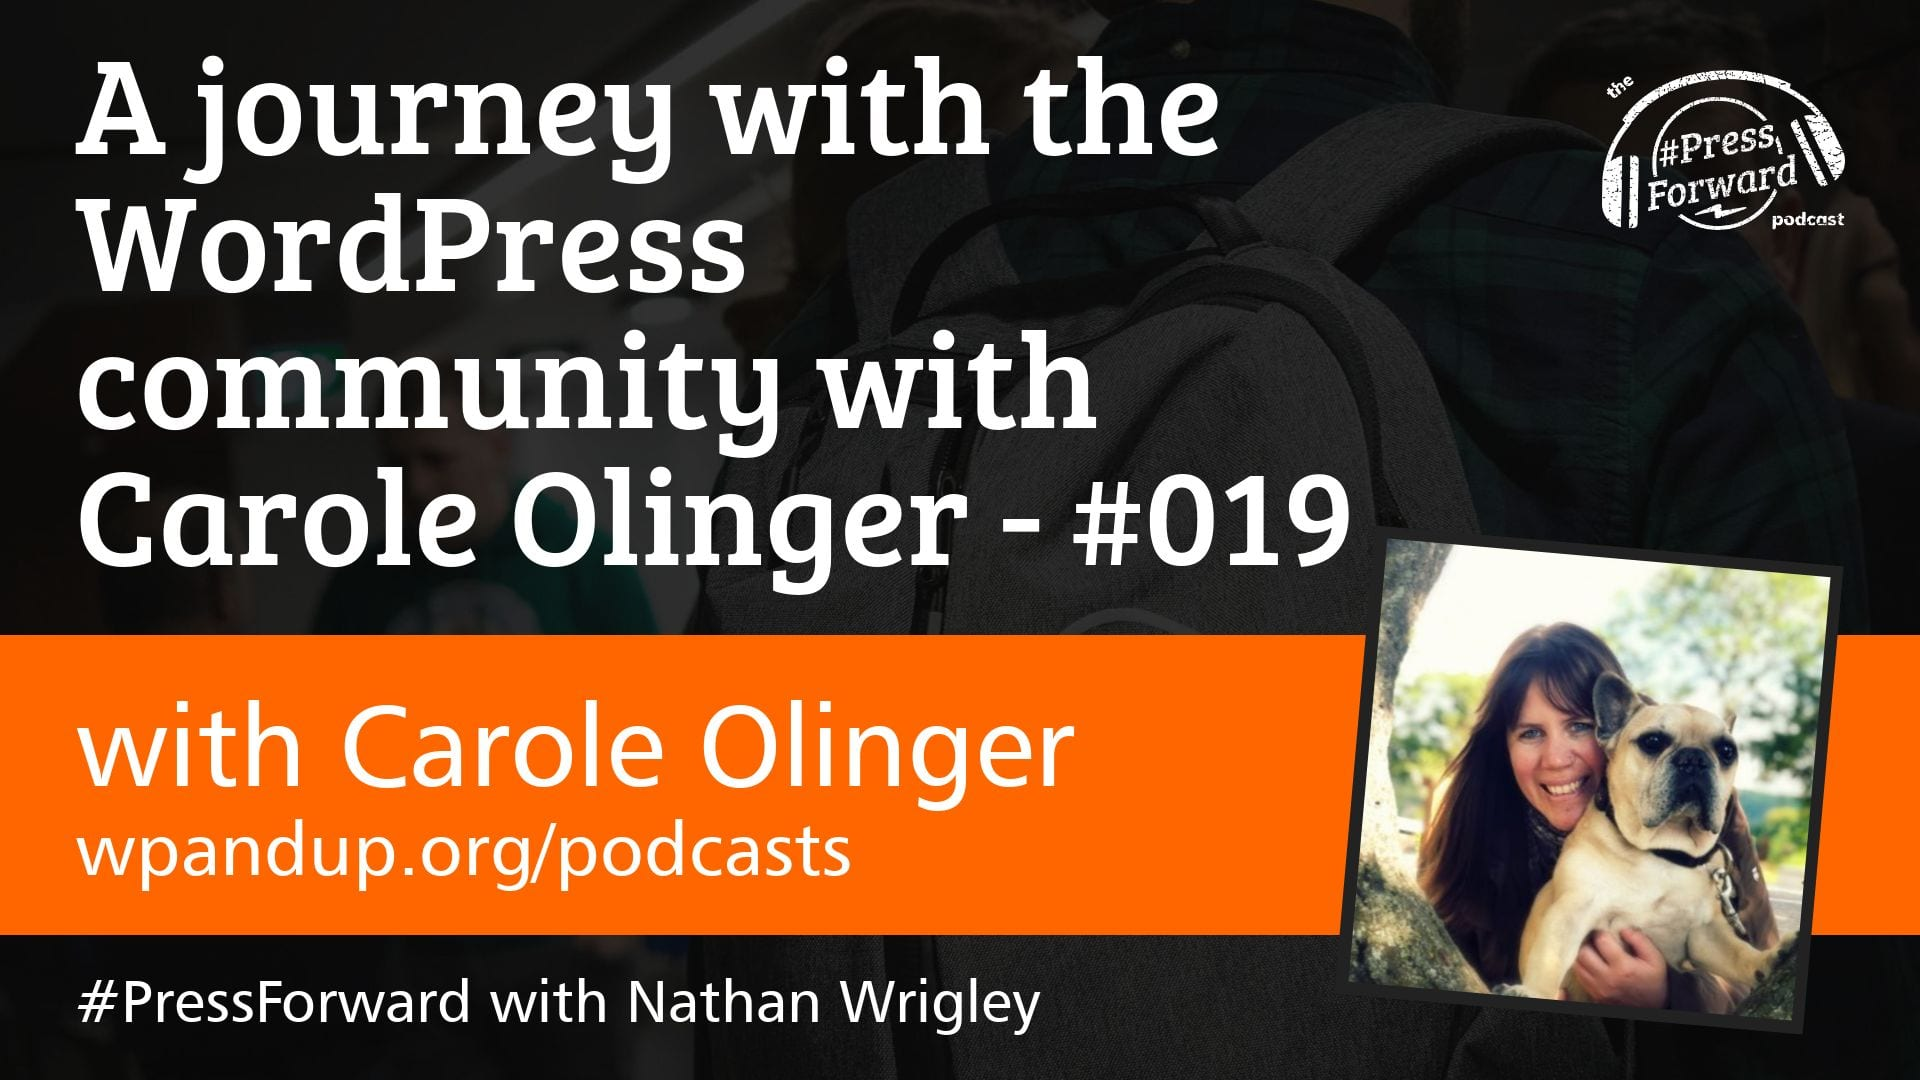 A journey with the WordPress community with Carole Olinger - #019